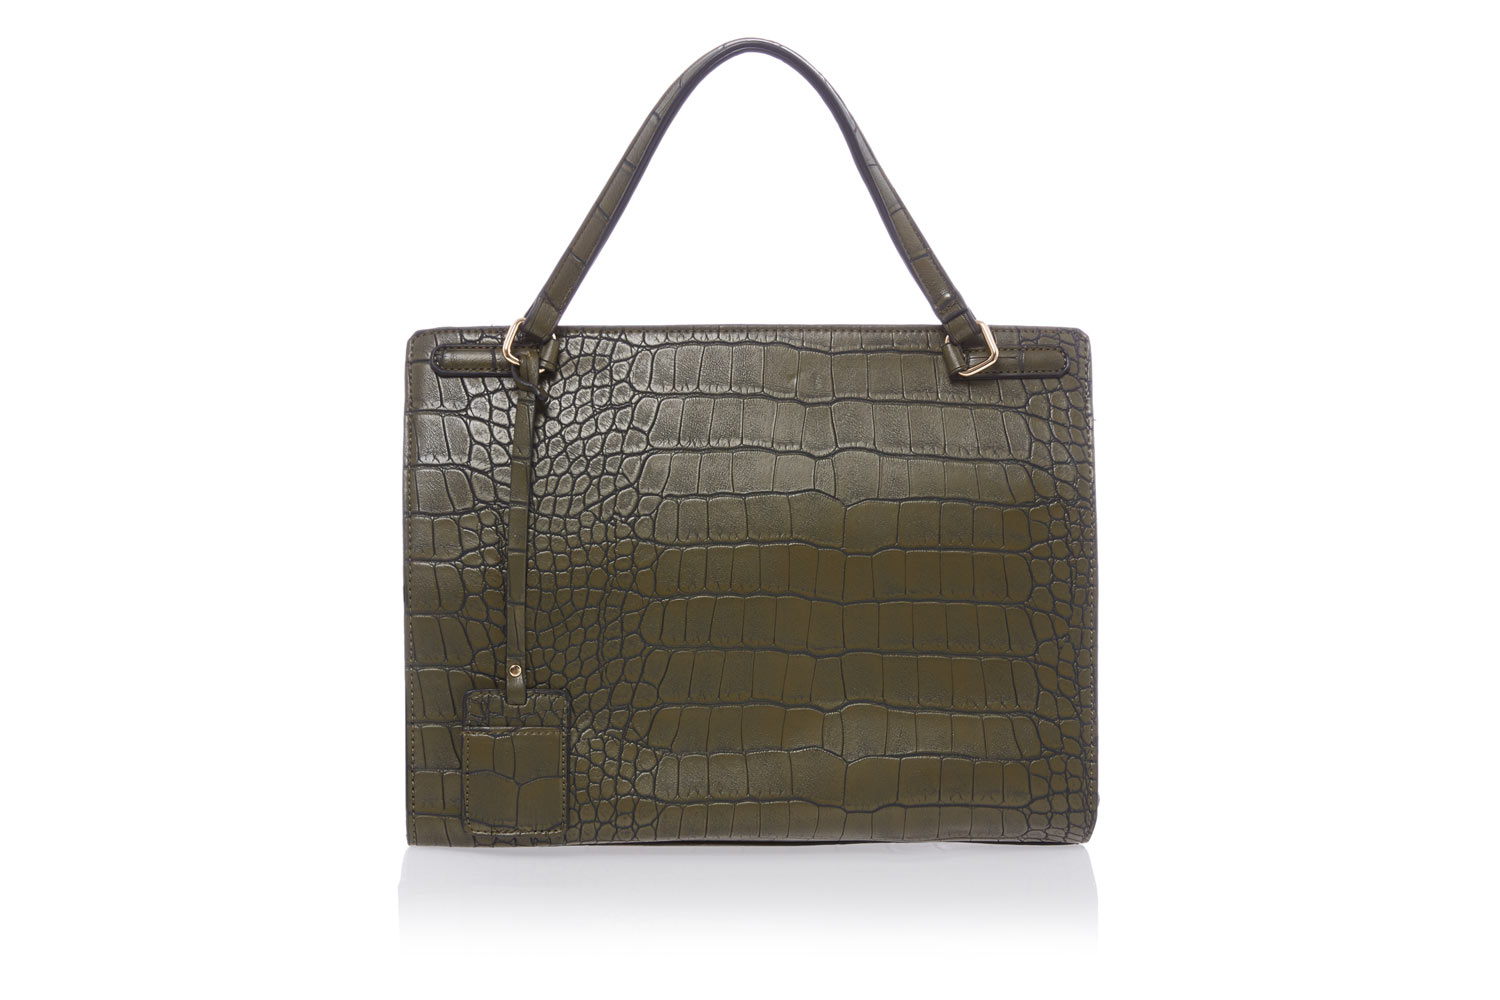 First To Consider Adding Your Christmas List Is Tu At Sainsbury S Olive Croc Print Bag This Classic Style Will Be Go For Seasons Come And The